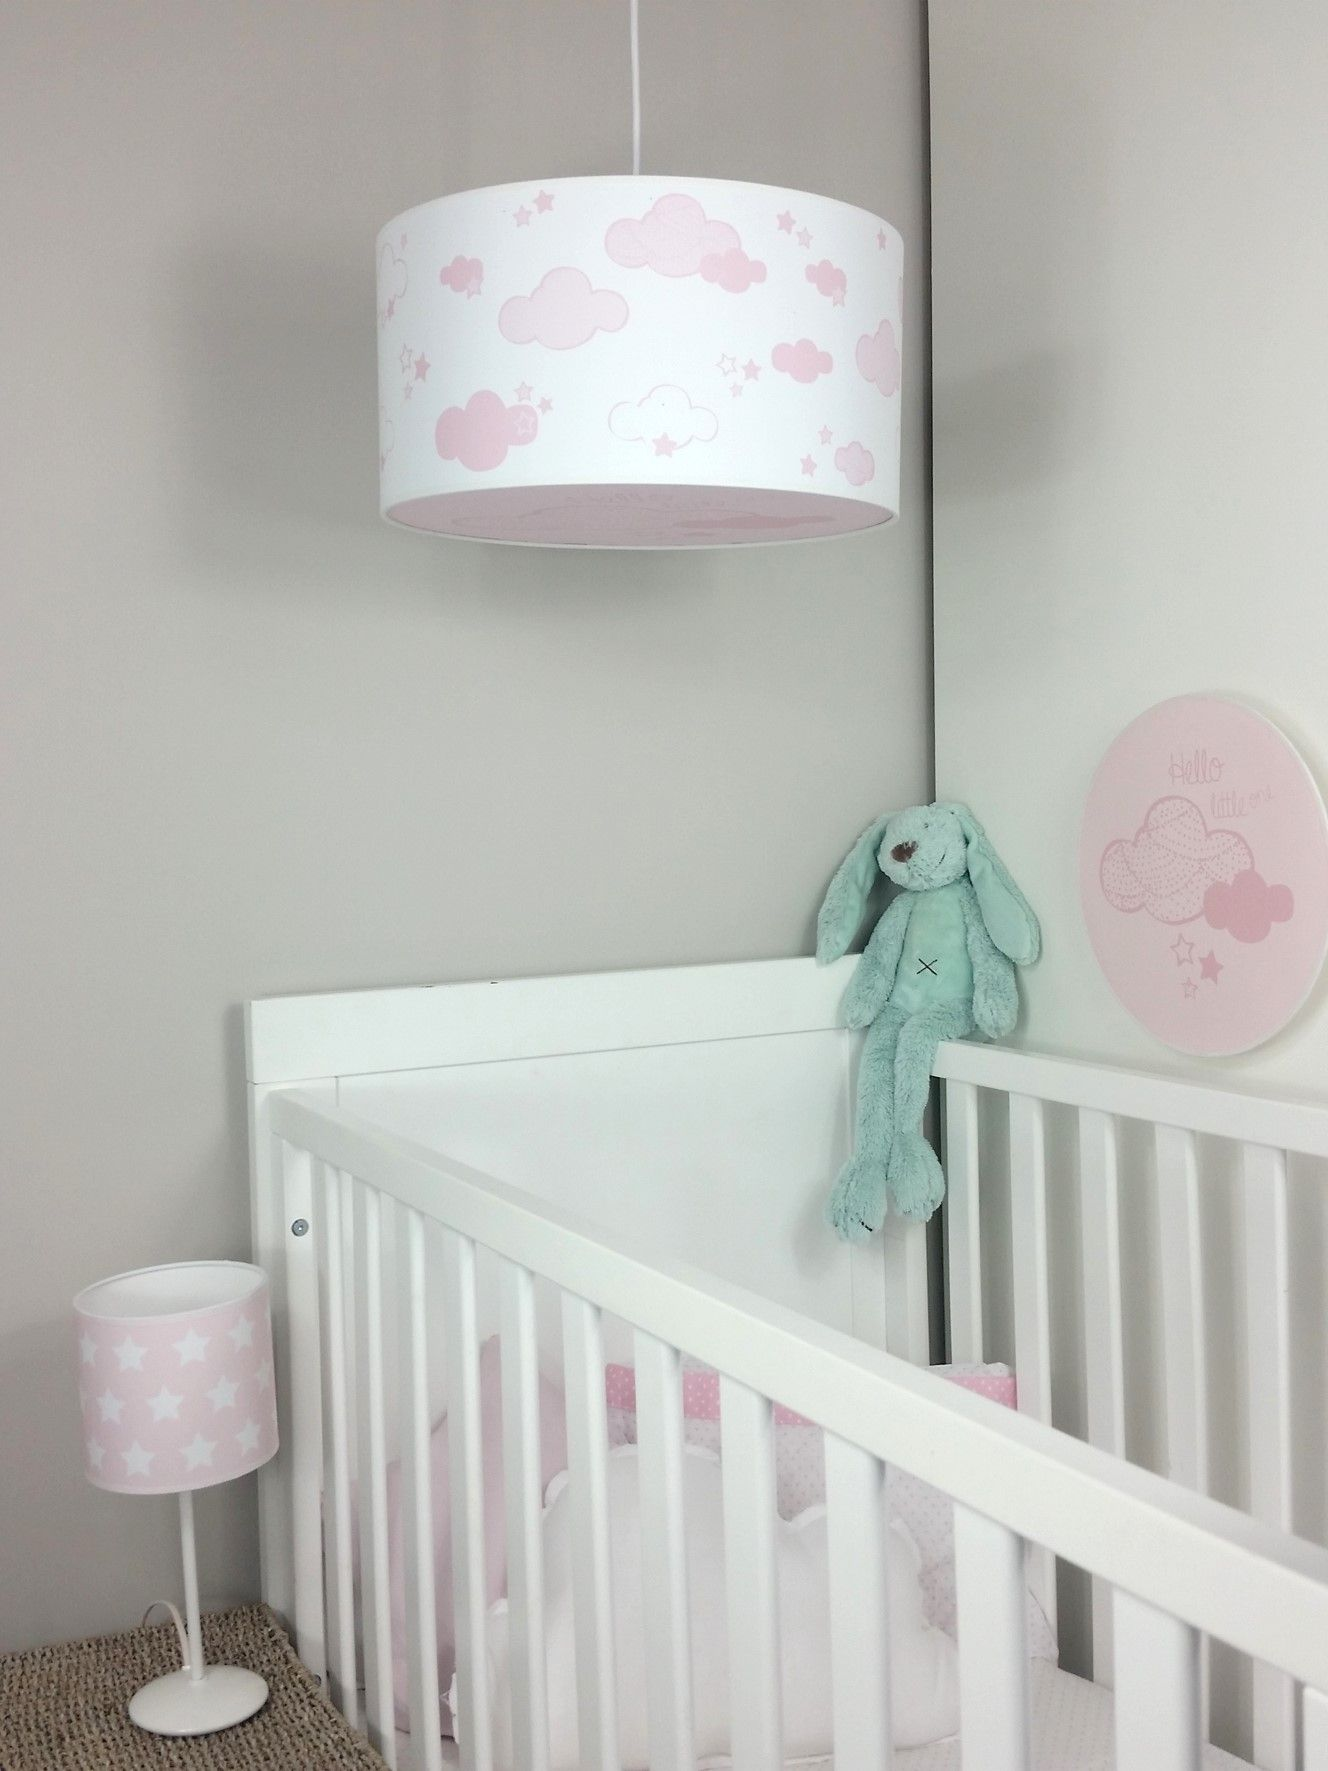 Decoratie Ladder Babykamer Noonos Lamp Babykamer Light Lampe Decoratie